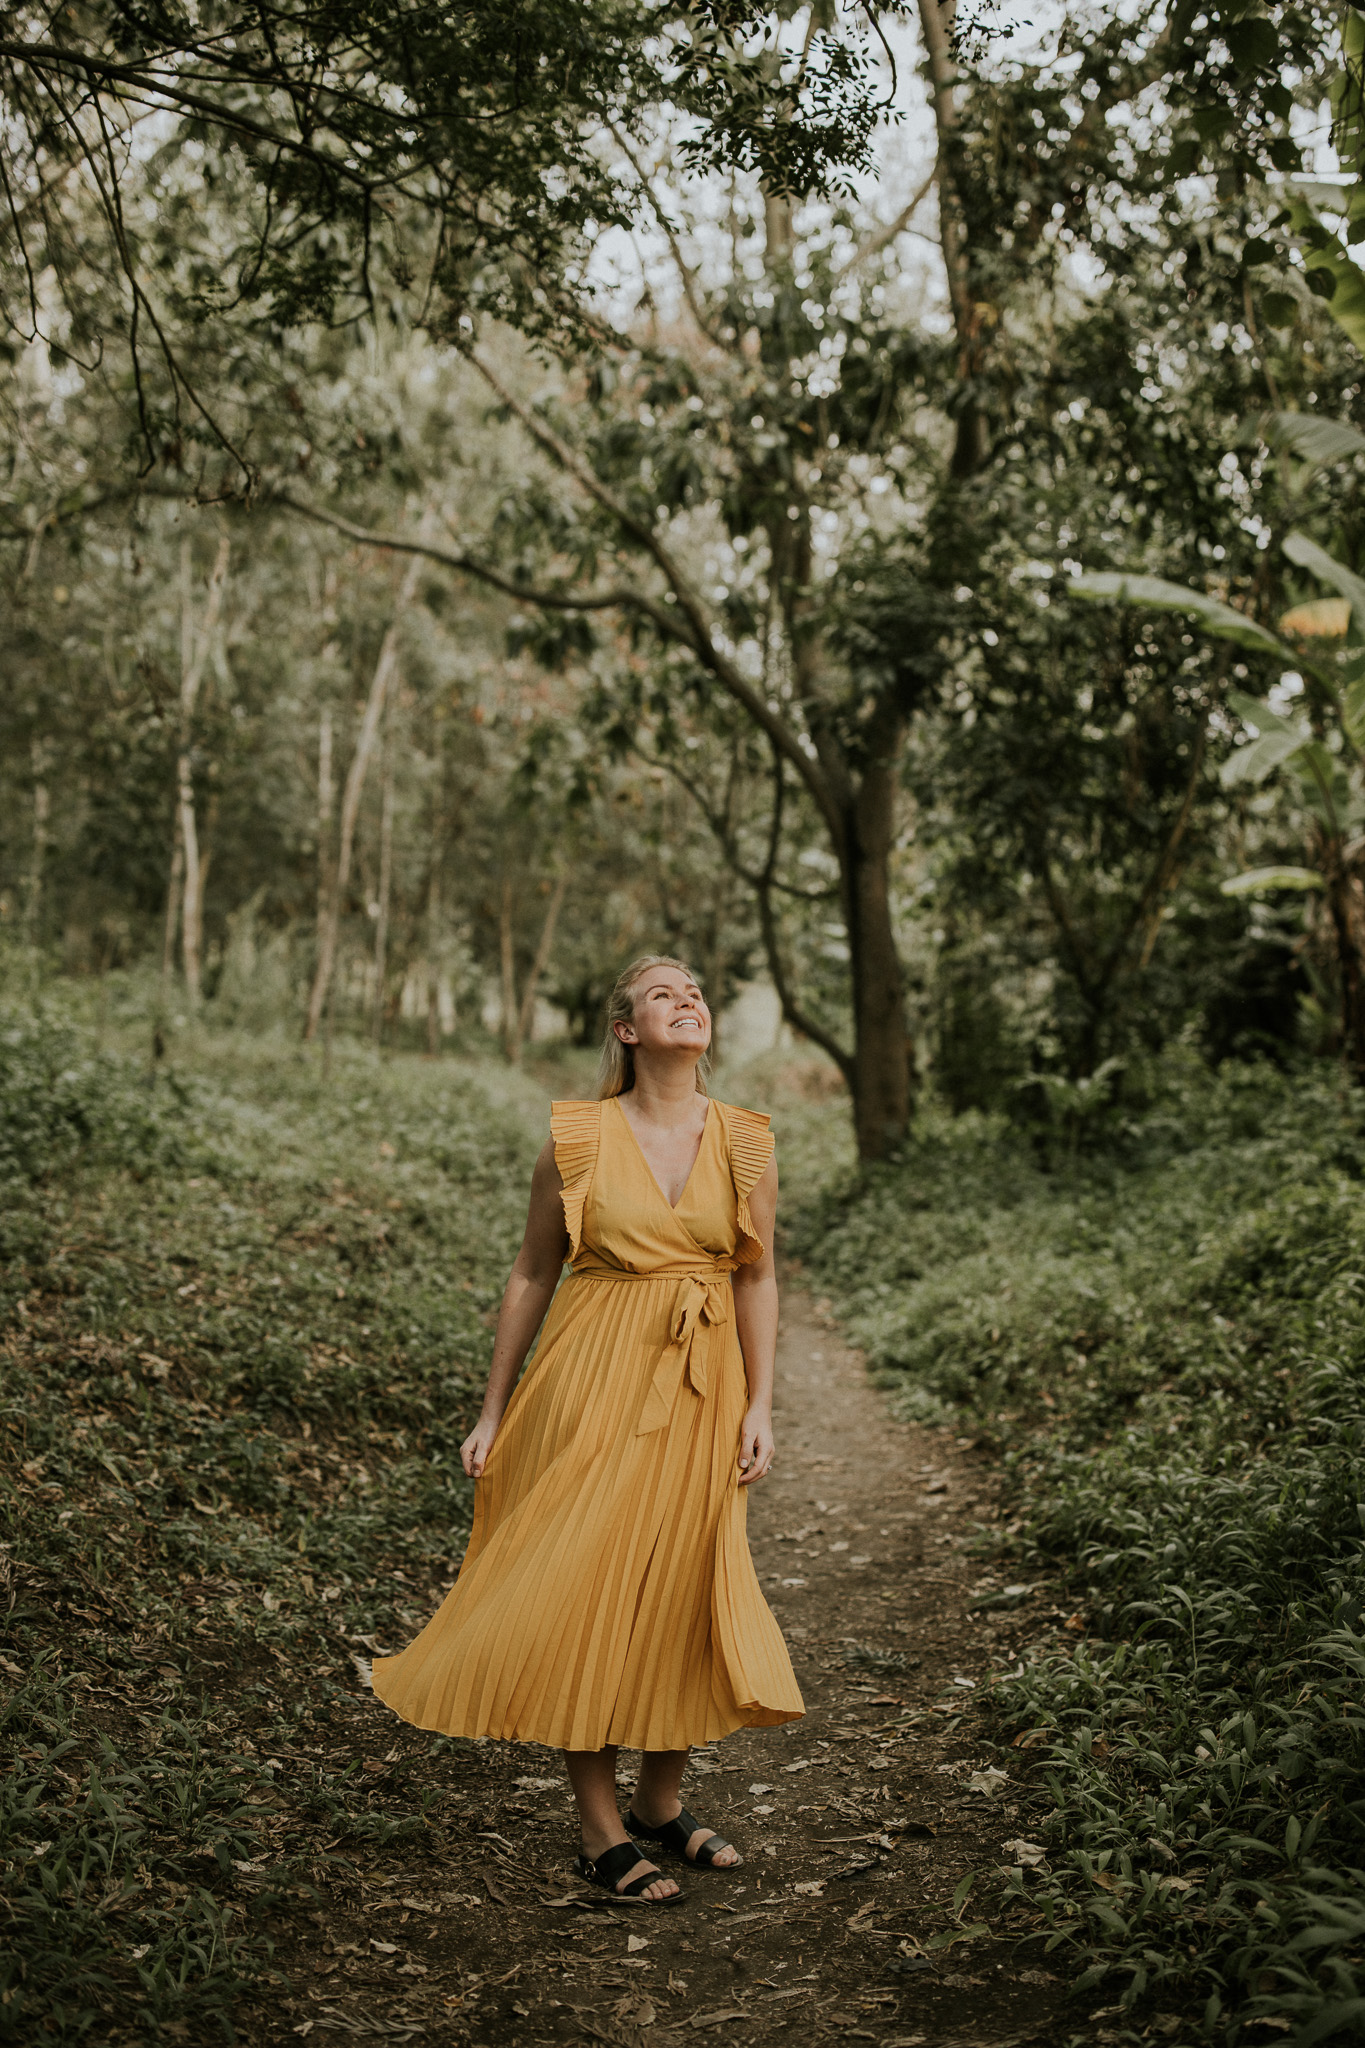 Africa Yellow Dress-5.jpg